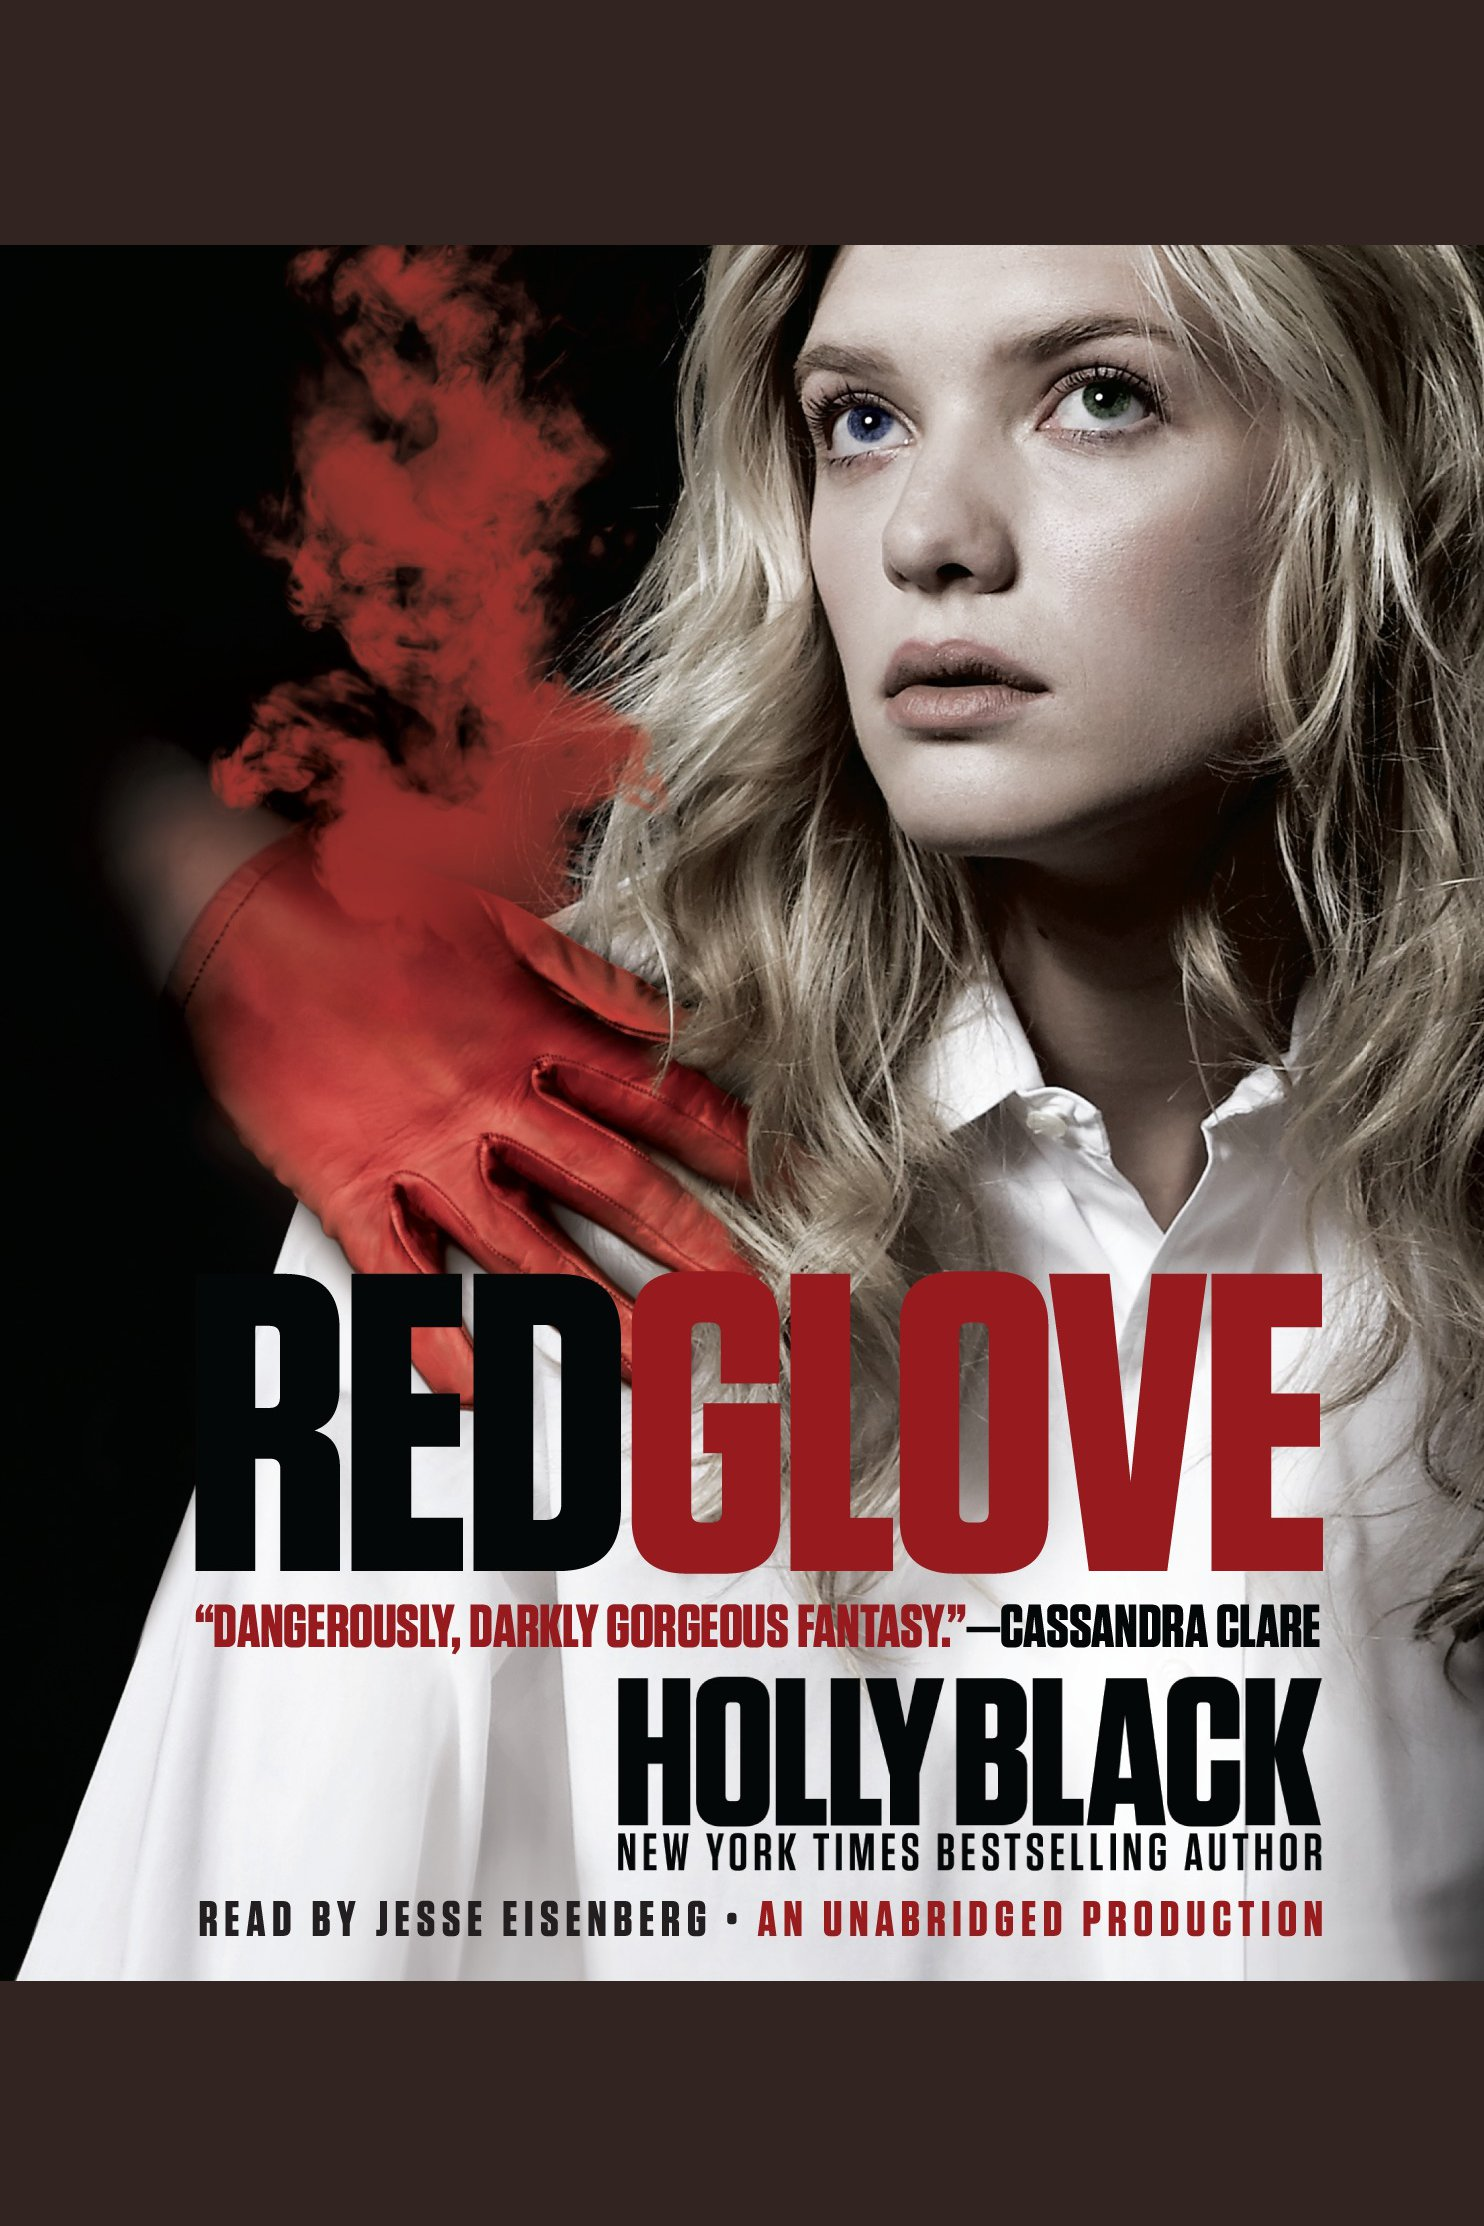 Red glove cover image